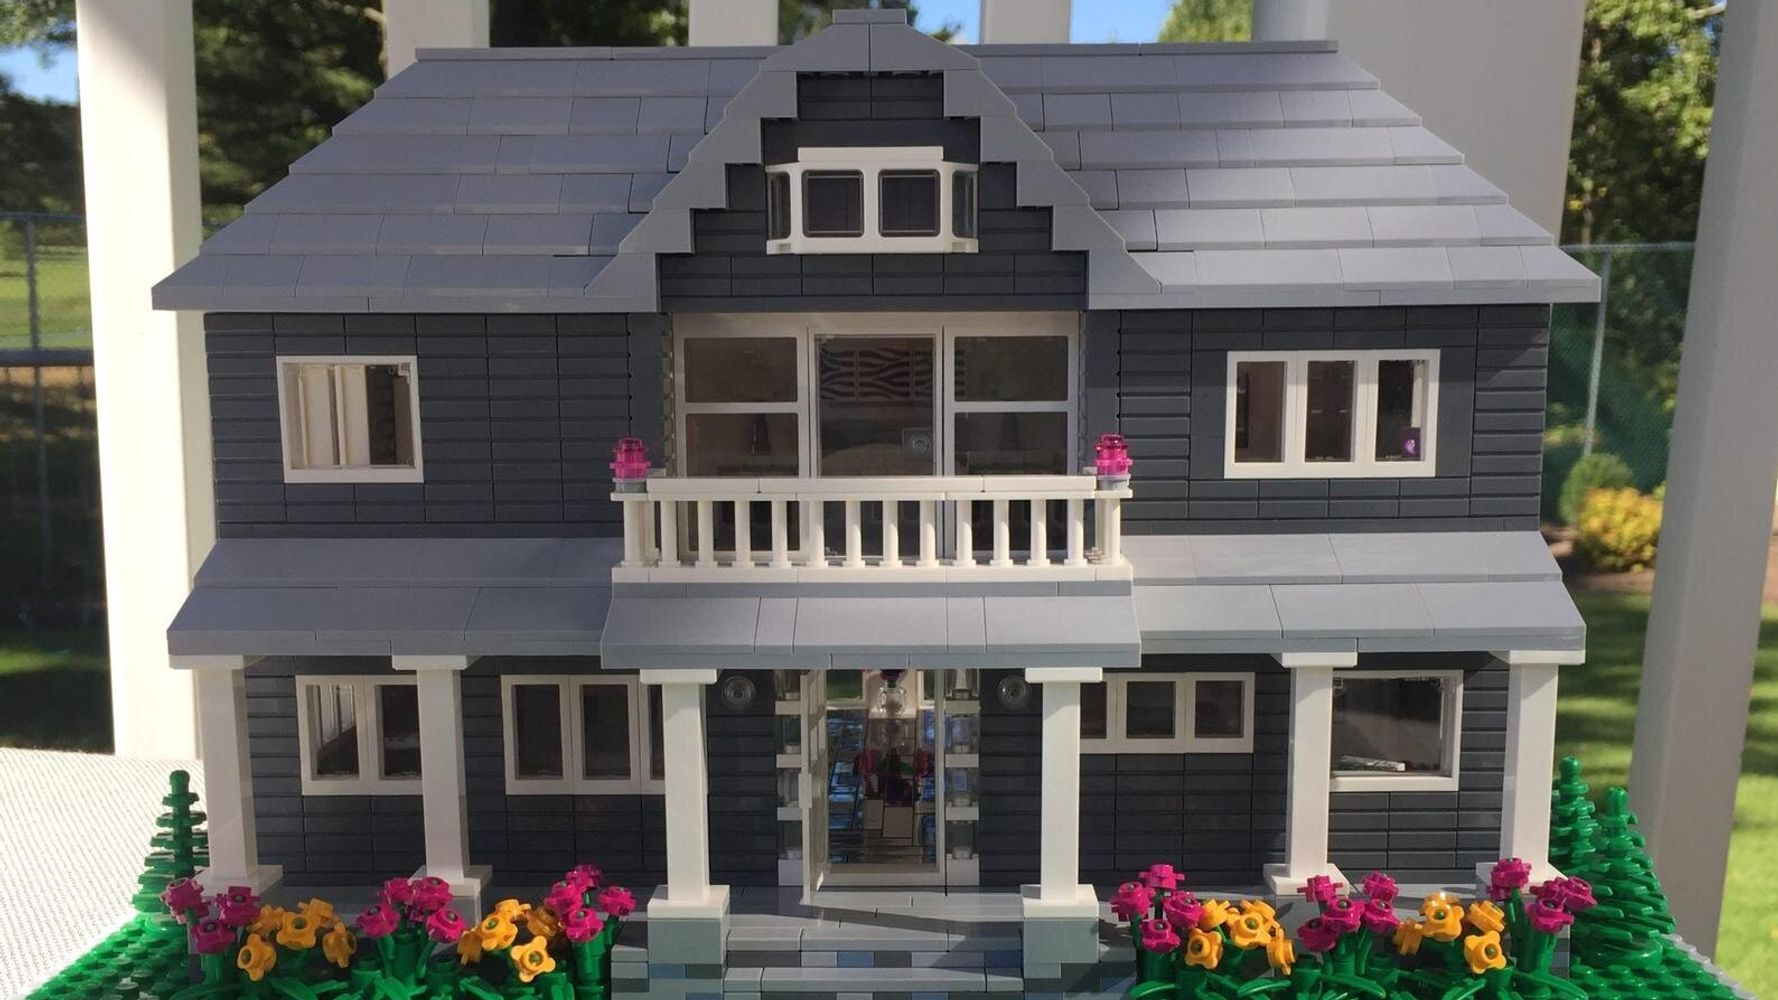 You Can Now Buy A Lego Replica Of Your Own Home – But It'll Cost You